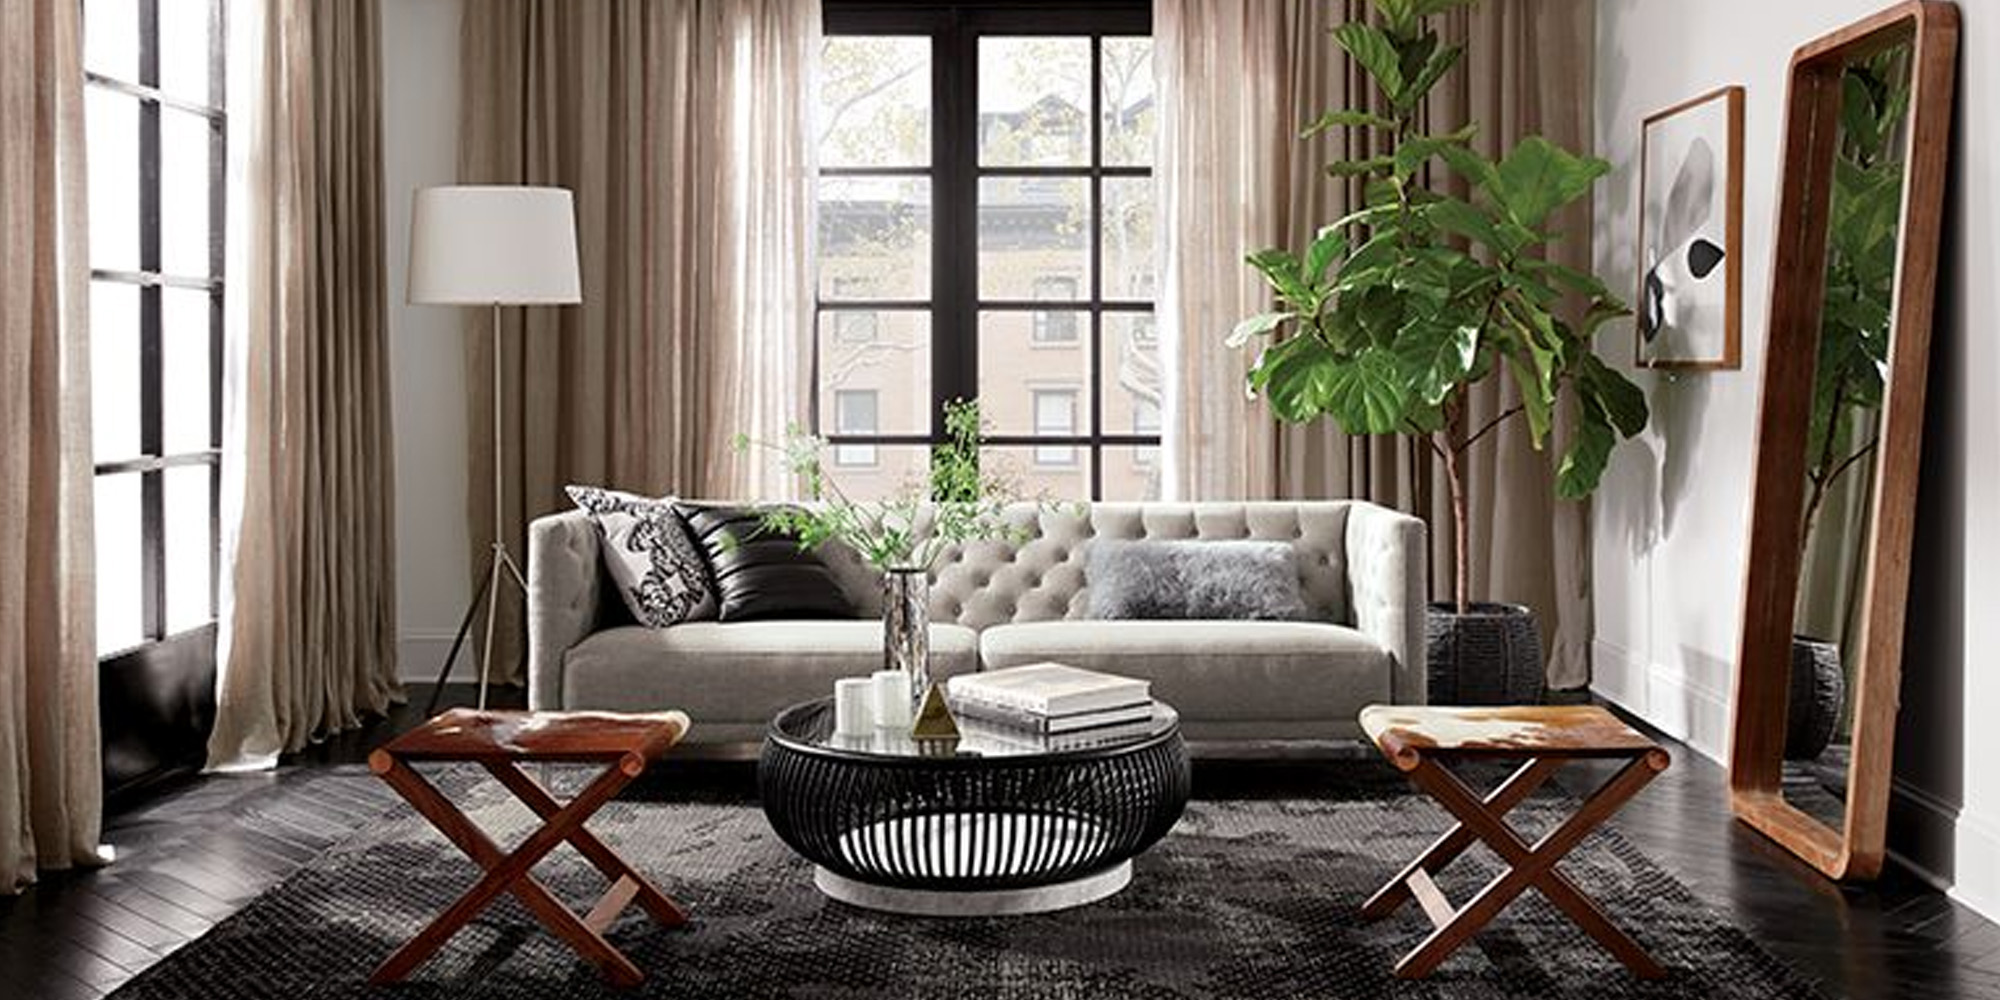 Cb2 Winter Clearance Sale Offers Up To 50 Off Home Decor